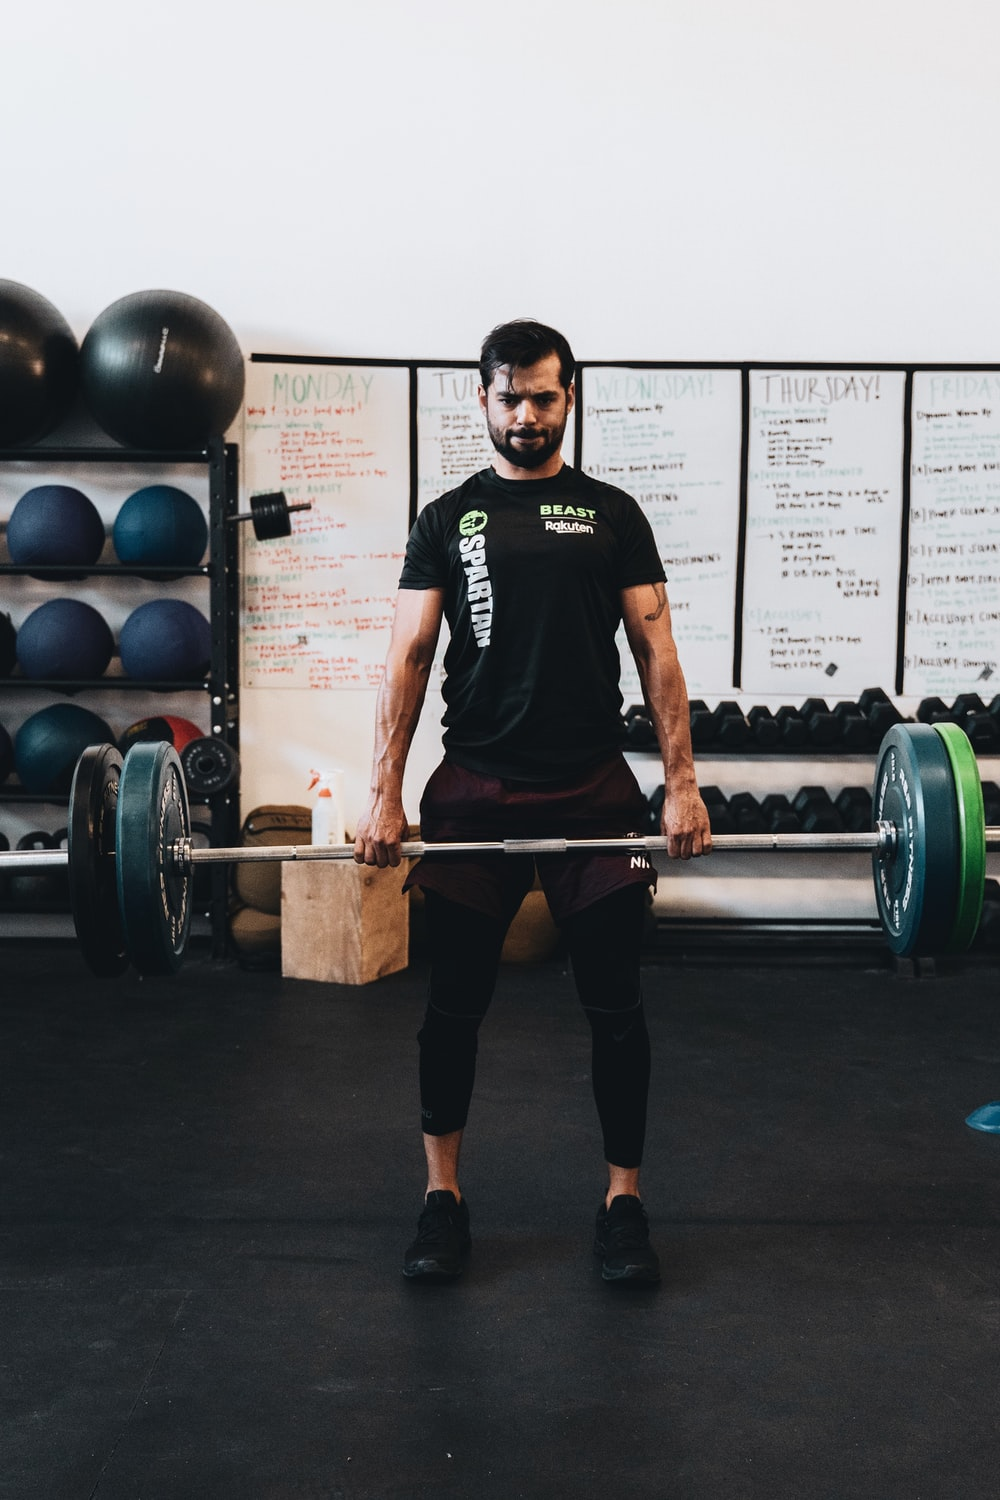 man in black crew neck t-shirt and black shorts carrying barbell